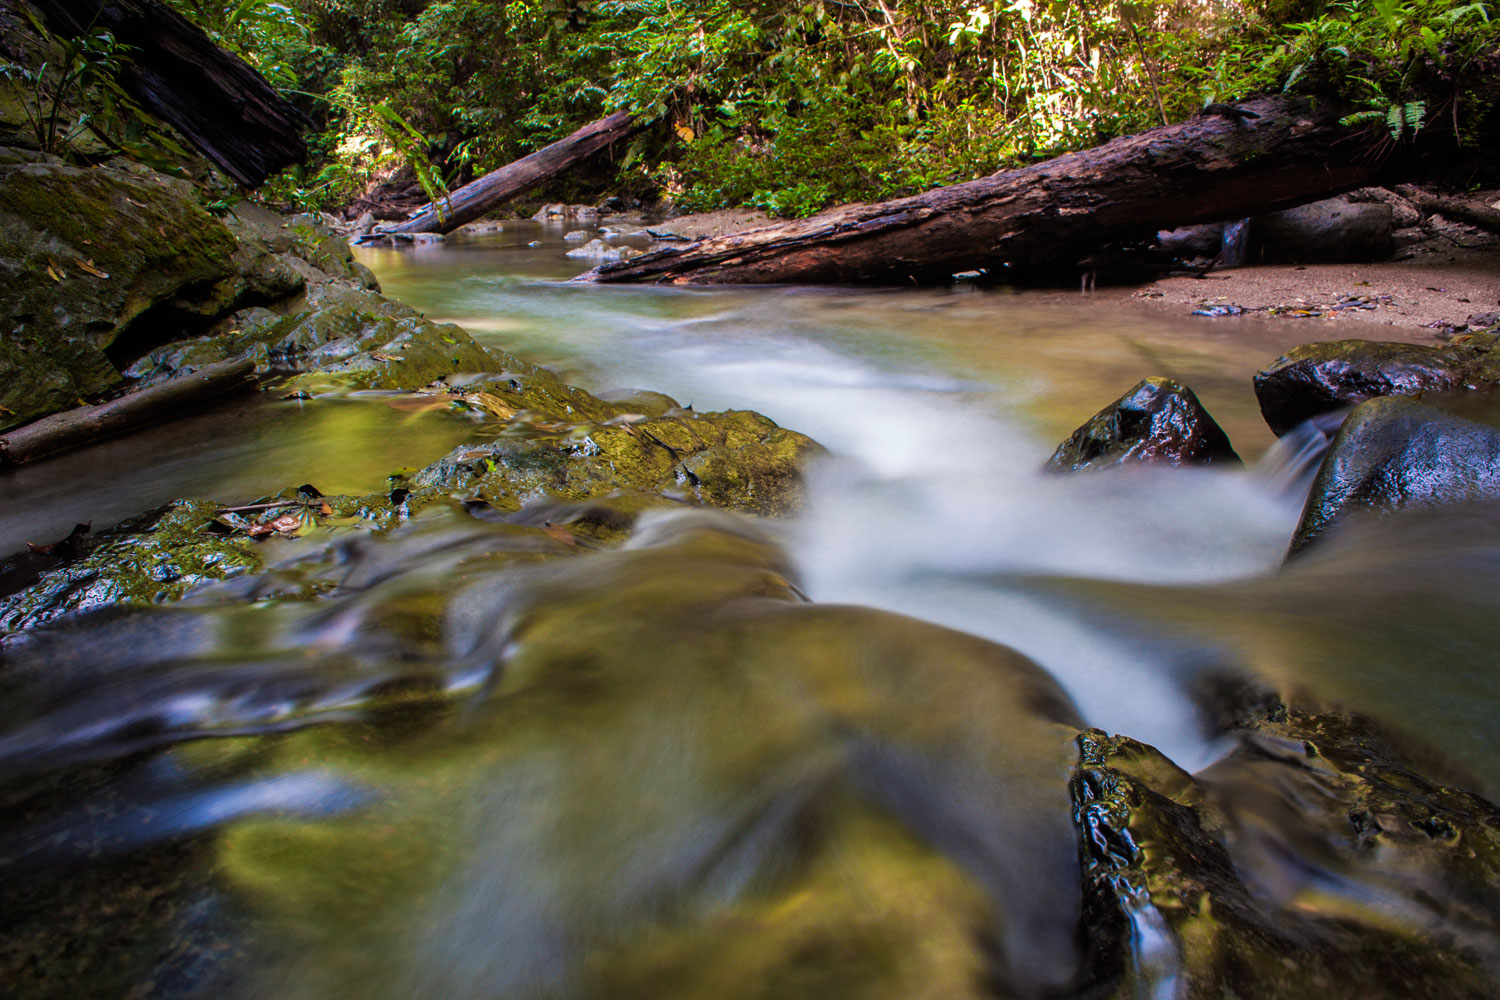 Image: A Neutral Density filter allows you to shoot longer exposures during the day.